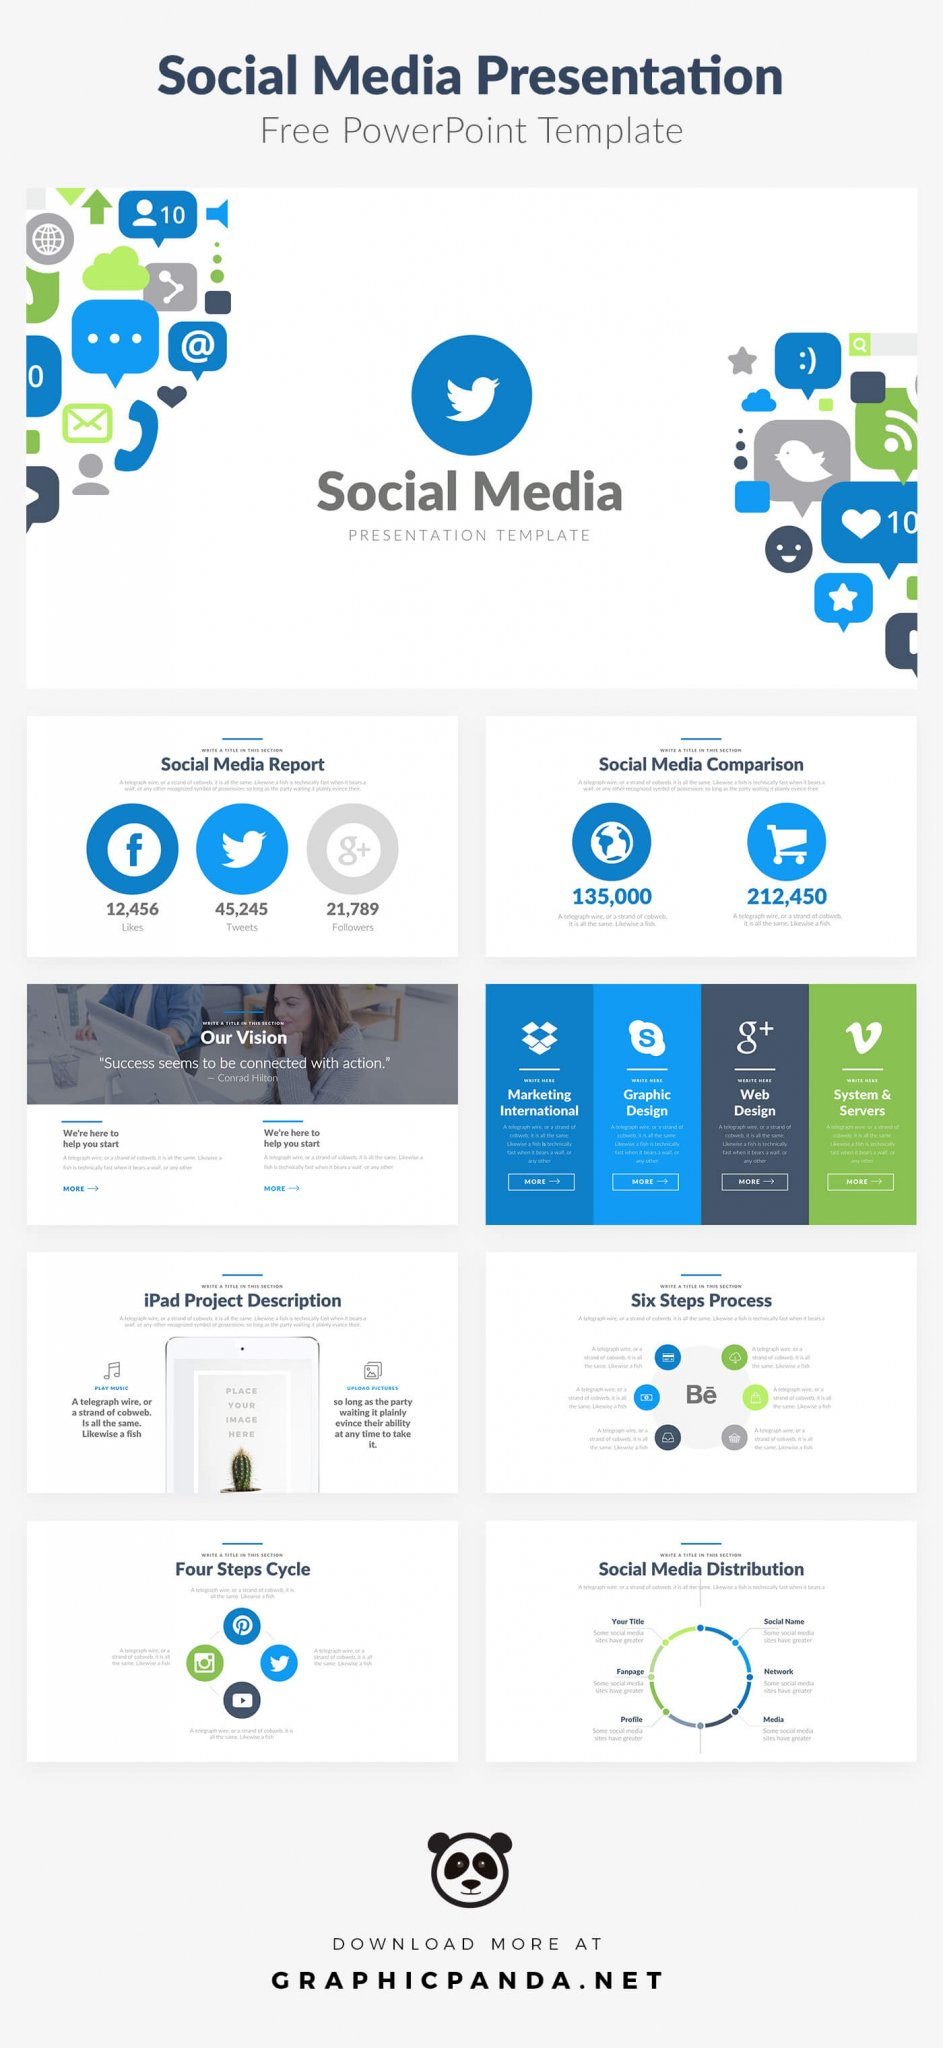 Free Social Media Powerpoint Templates